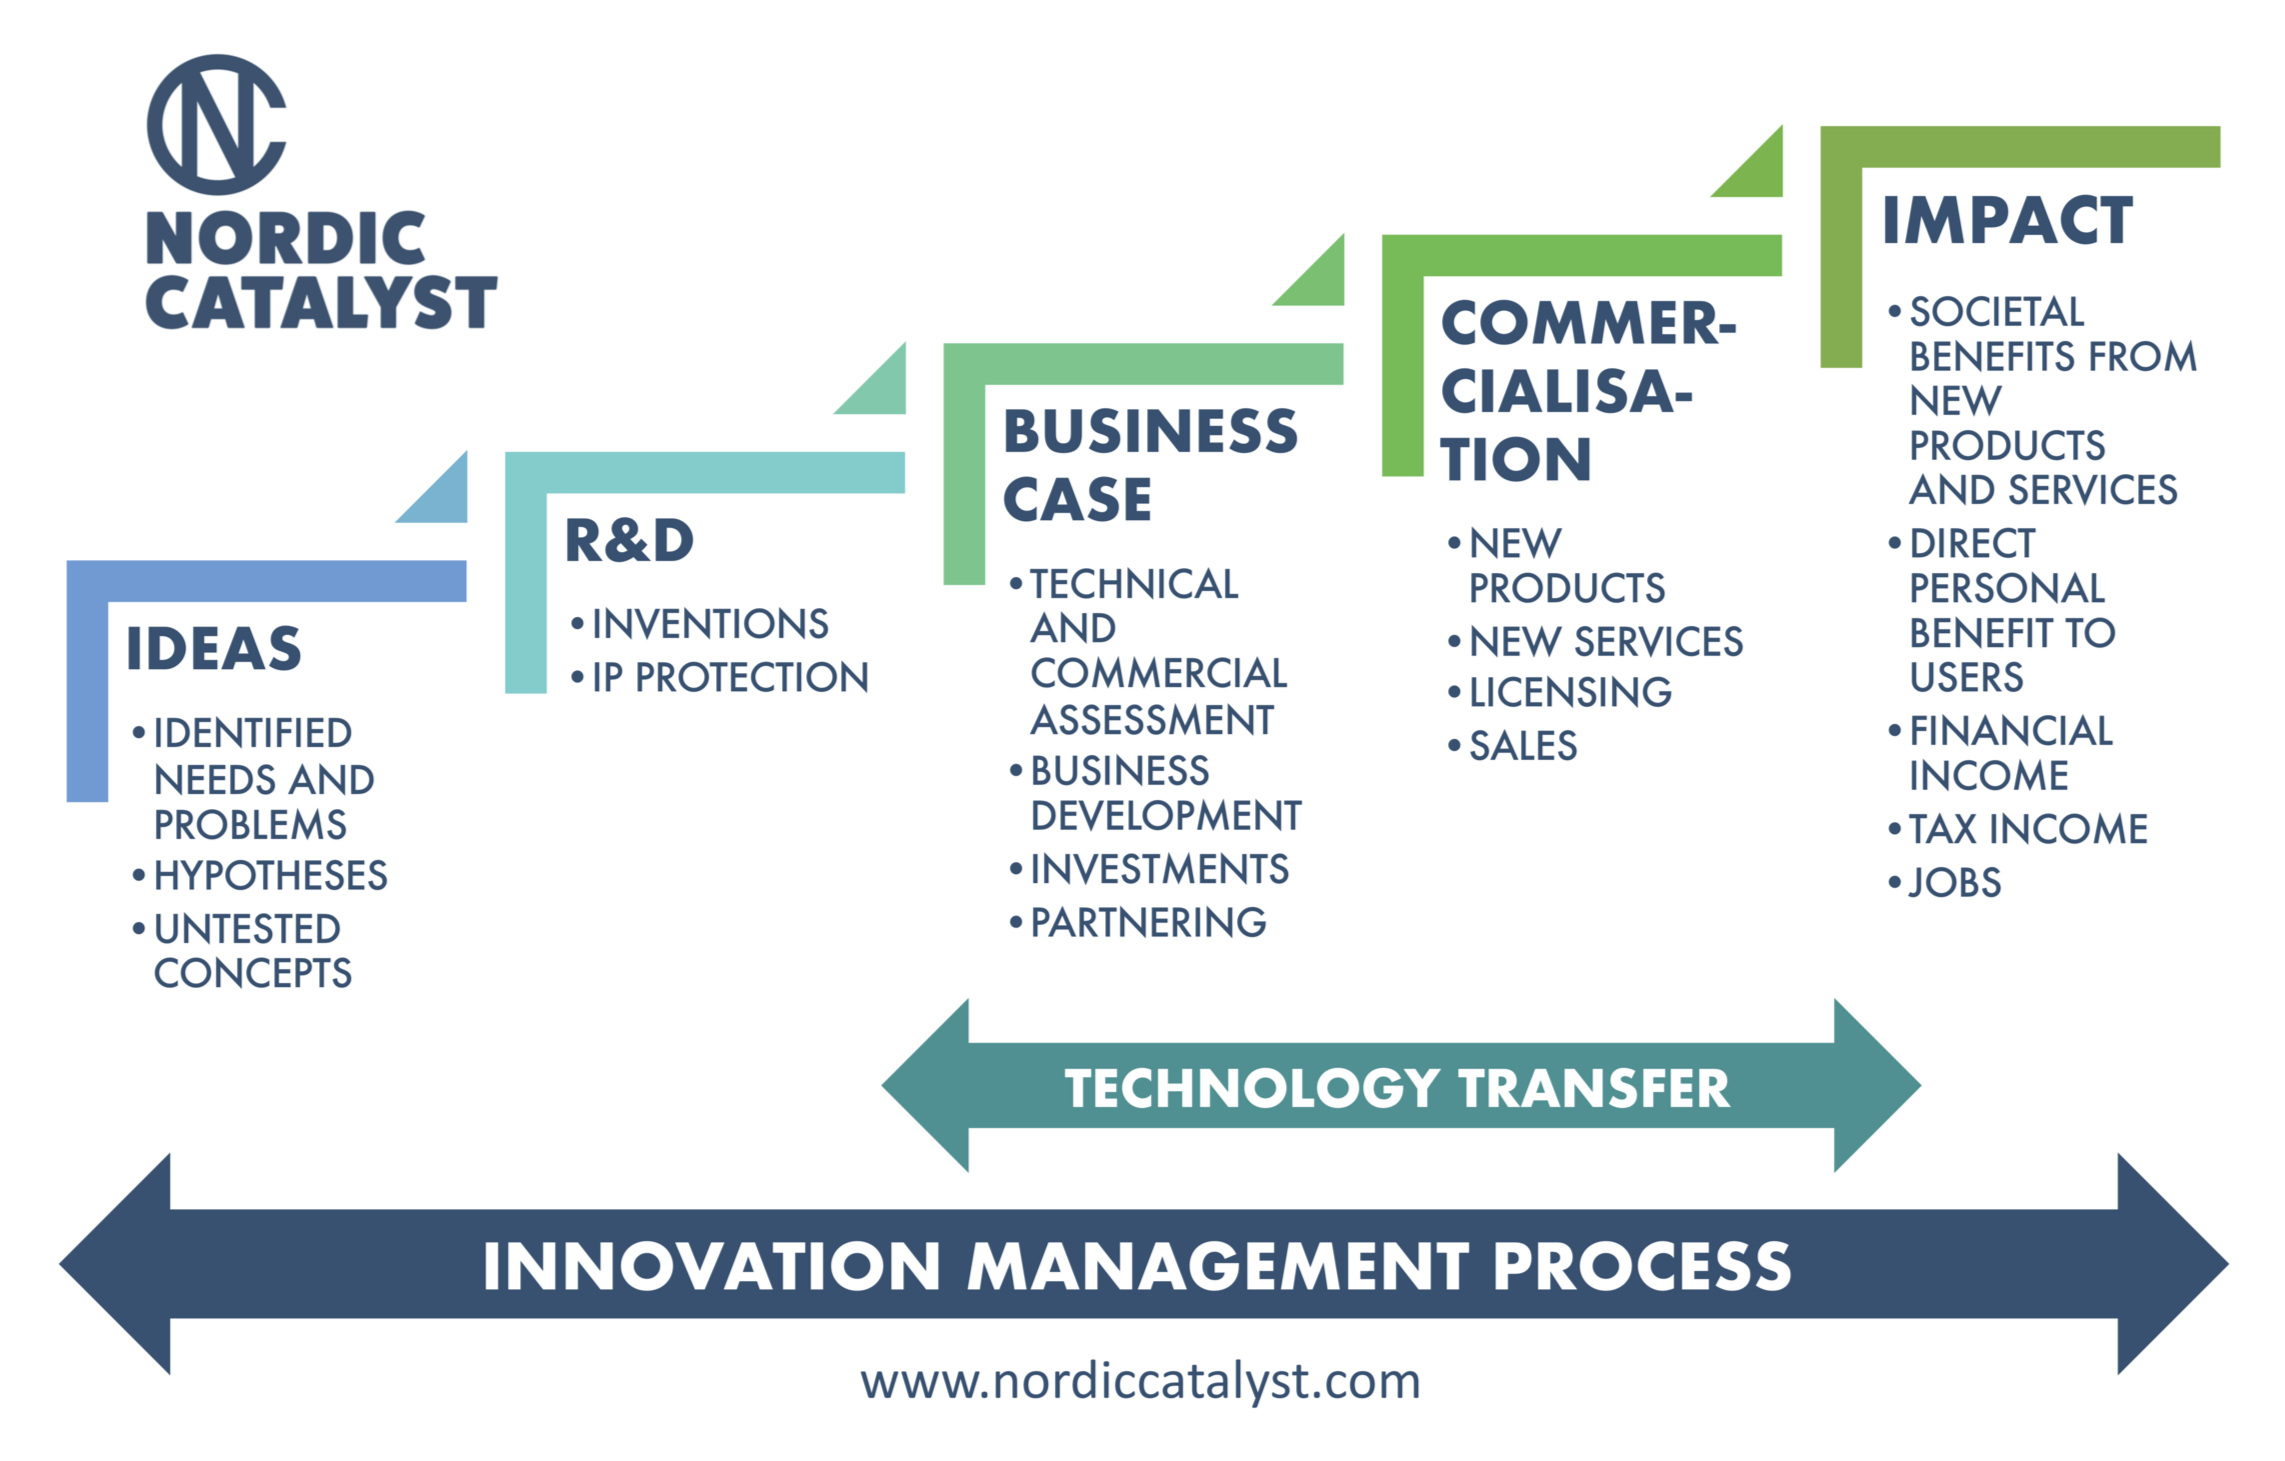 Stages of a typical commercialisation process in a research organisation. The innovation management process spans through all of the different activities and involves a variety of internal and external actors and stakeholders.